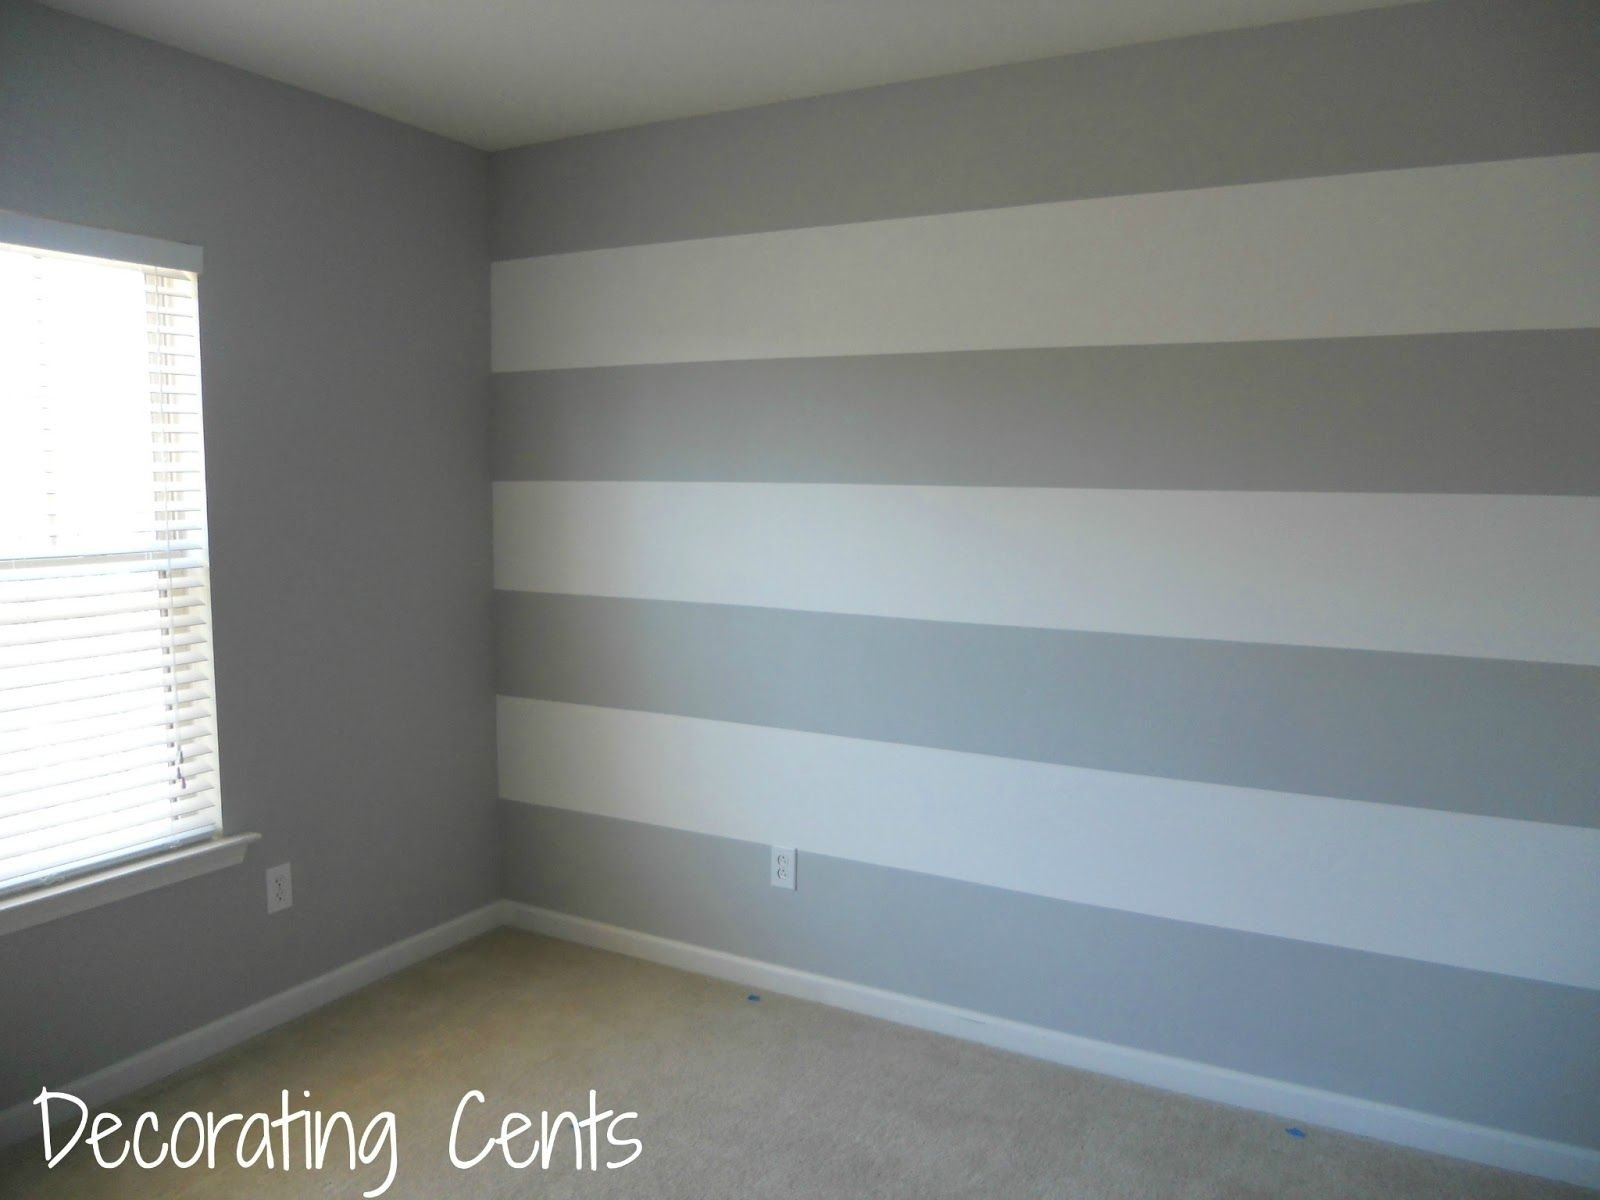 Decorating Cents: Painting A Striped Wall | Bedrooms | Pinterest In Most Recently Released Vertical Stripes Wall Accents (View 8 of 15)